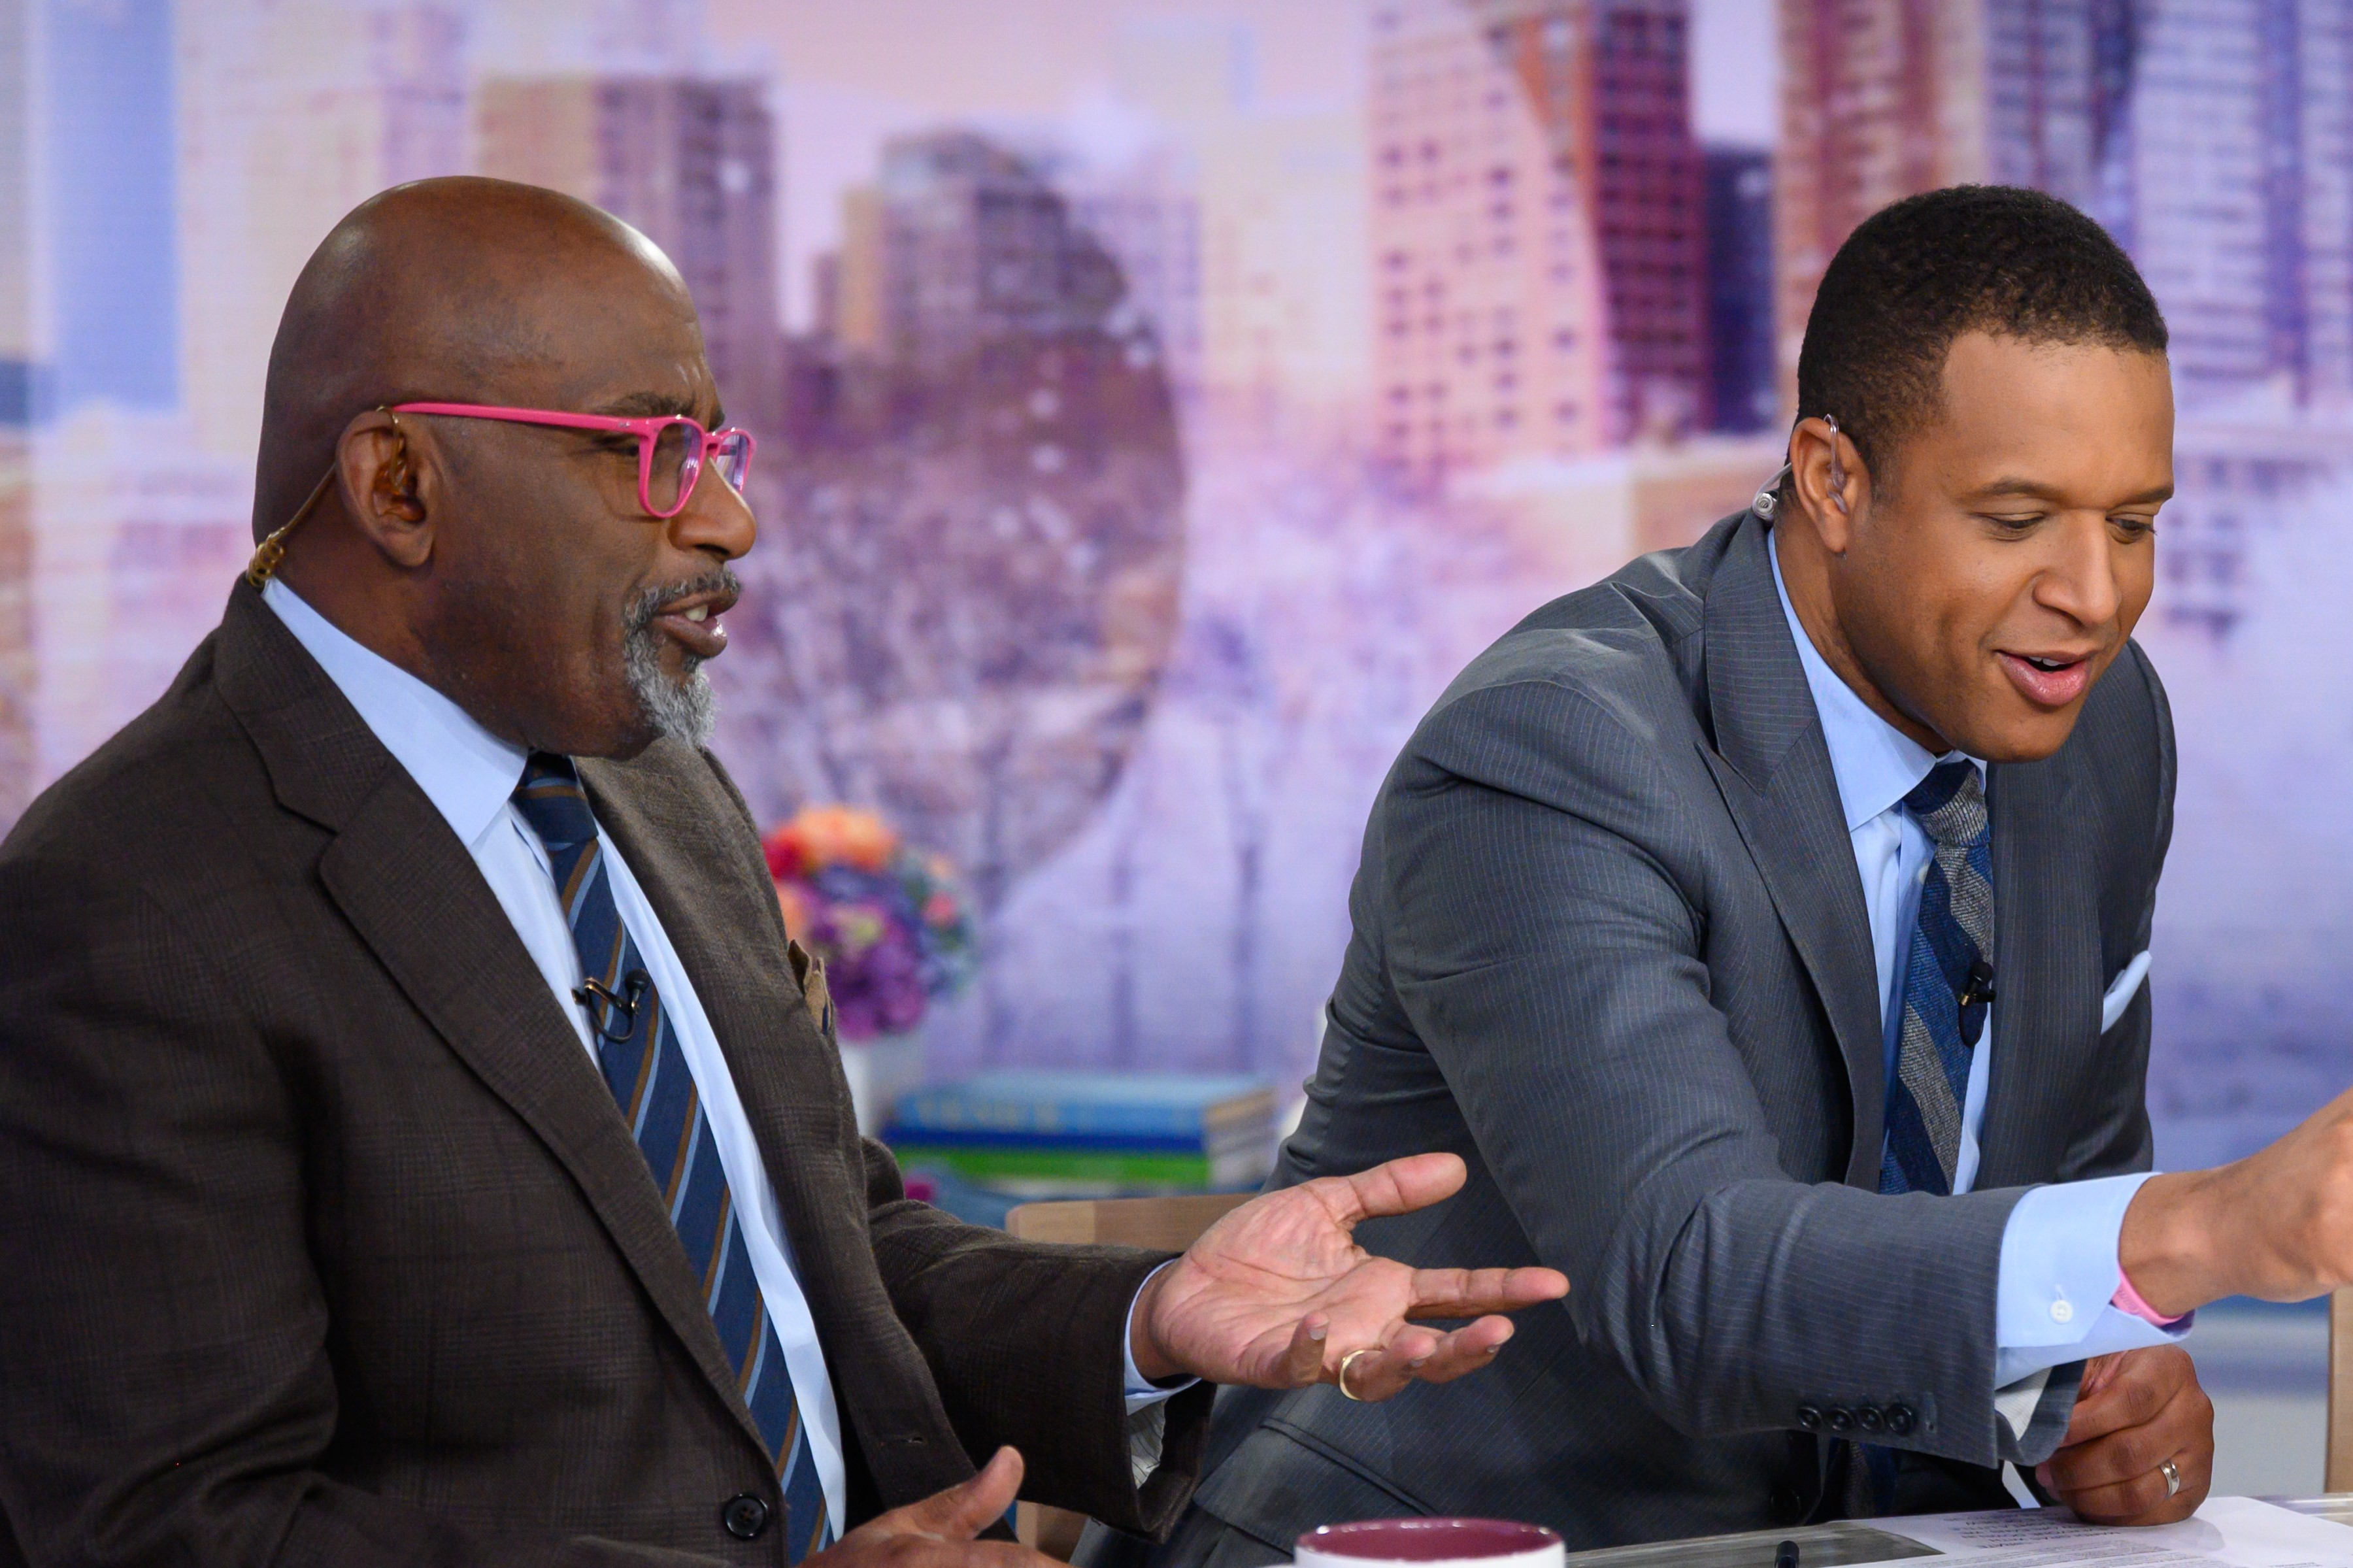 Al Roker and Craig Melvin on the TODAY set (credit: NBCU Photo Bank via Getty Images)